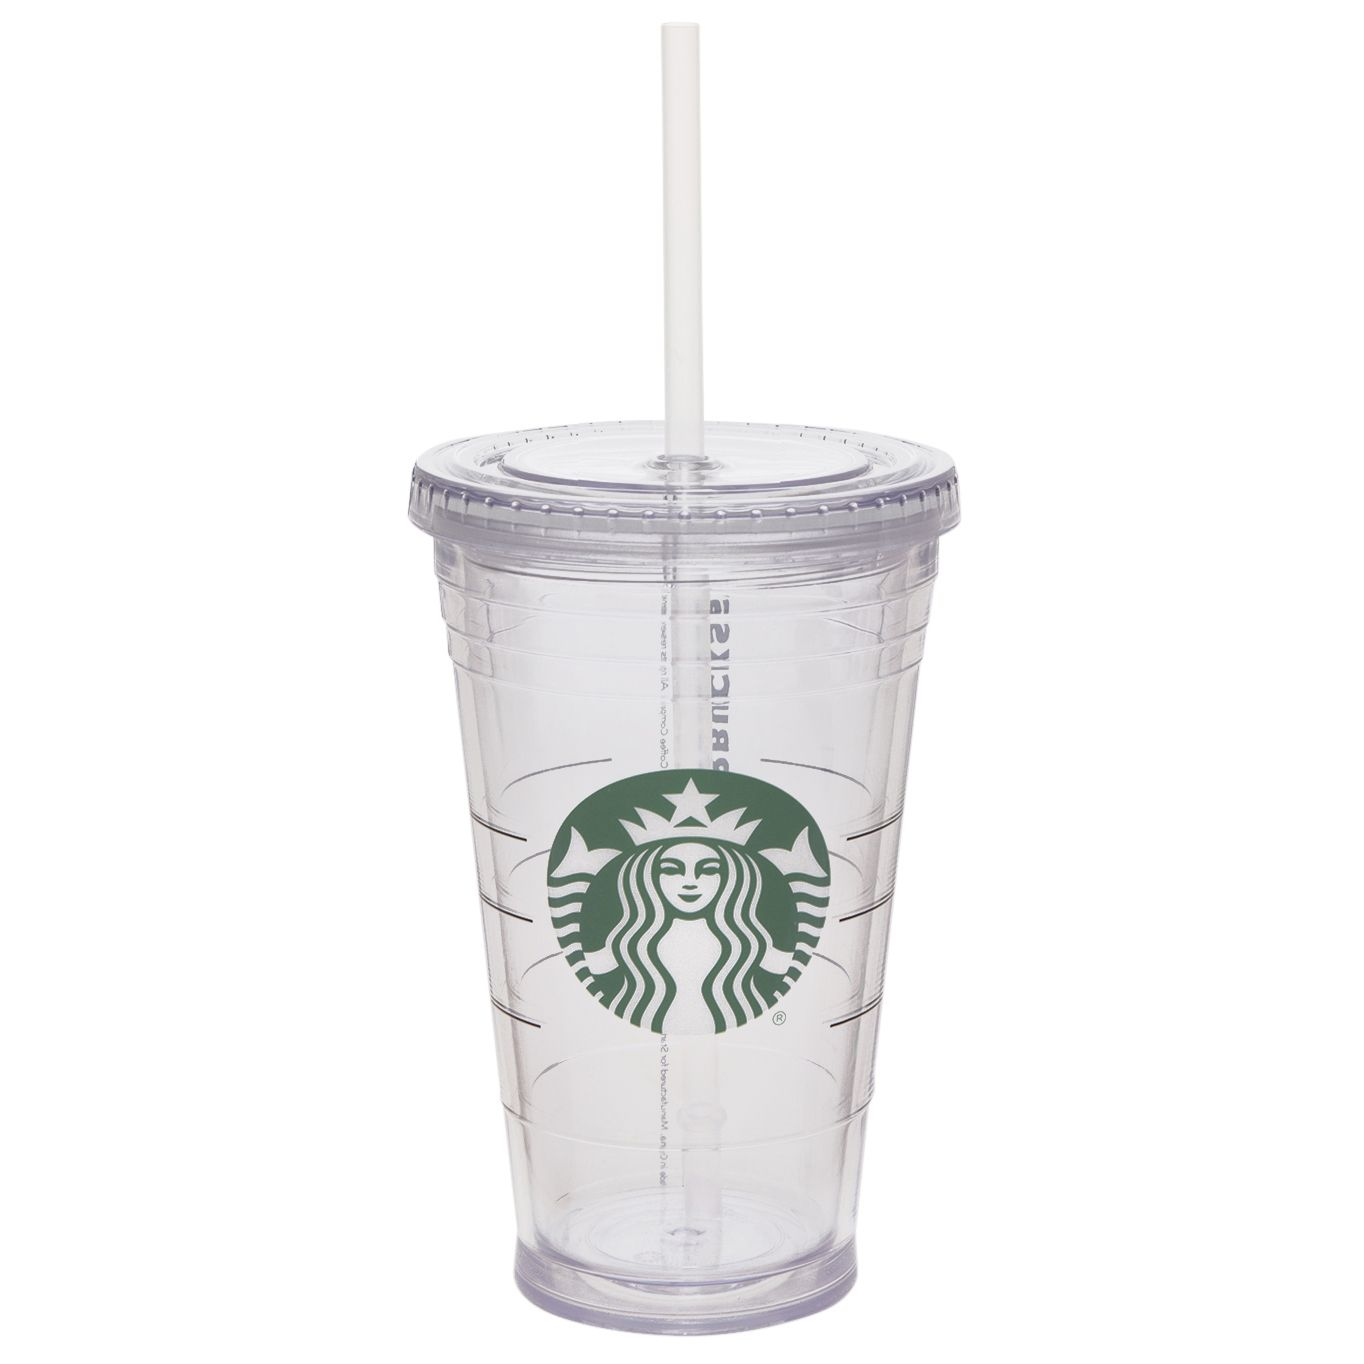 19+ Starbucks clear cup sizes inspirations